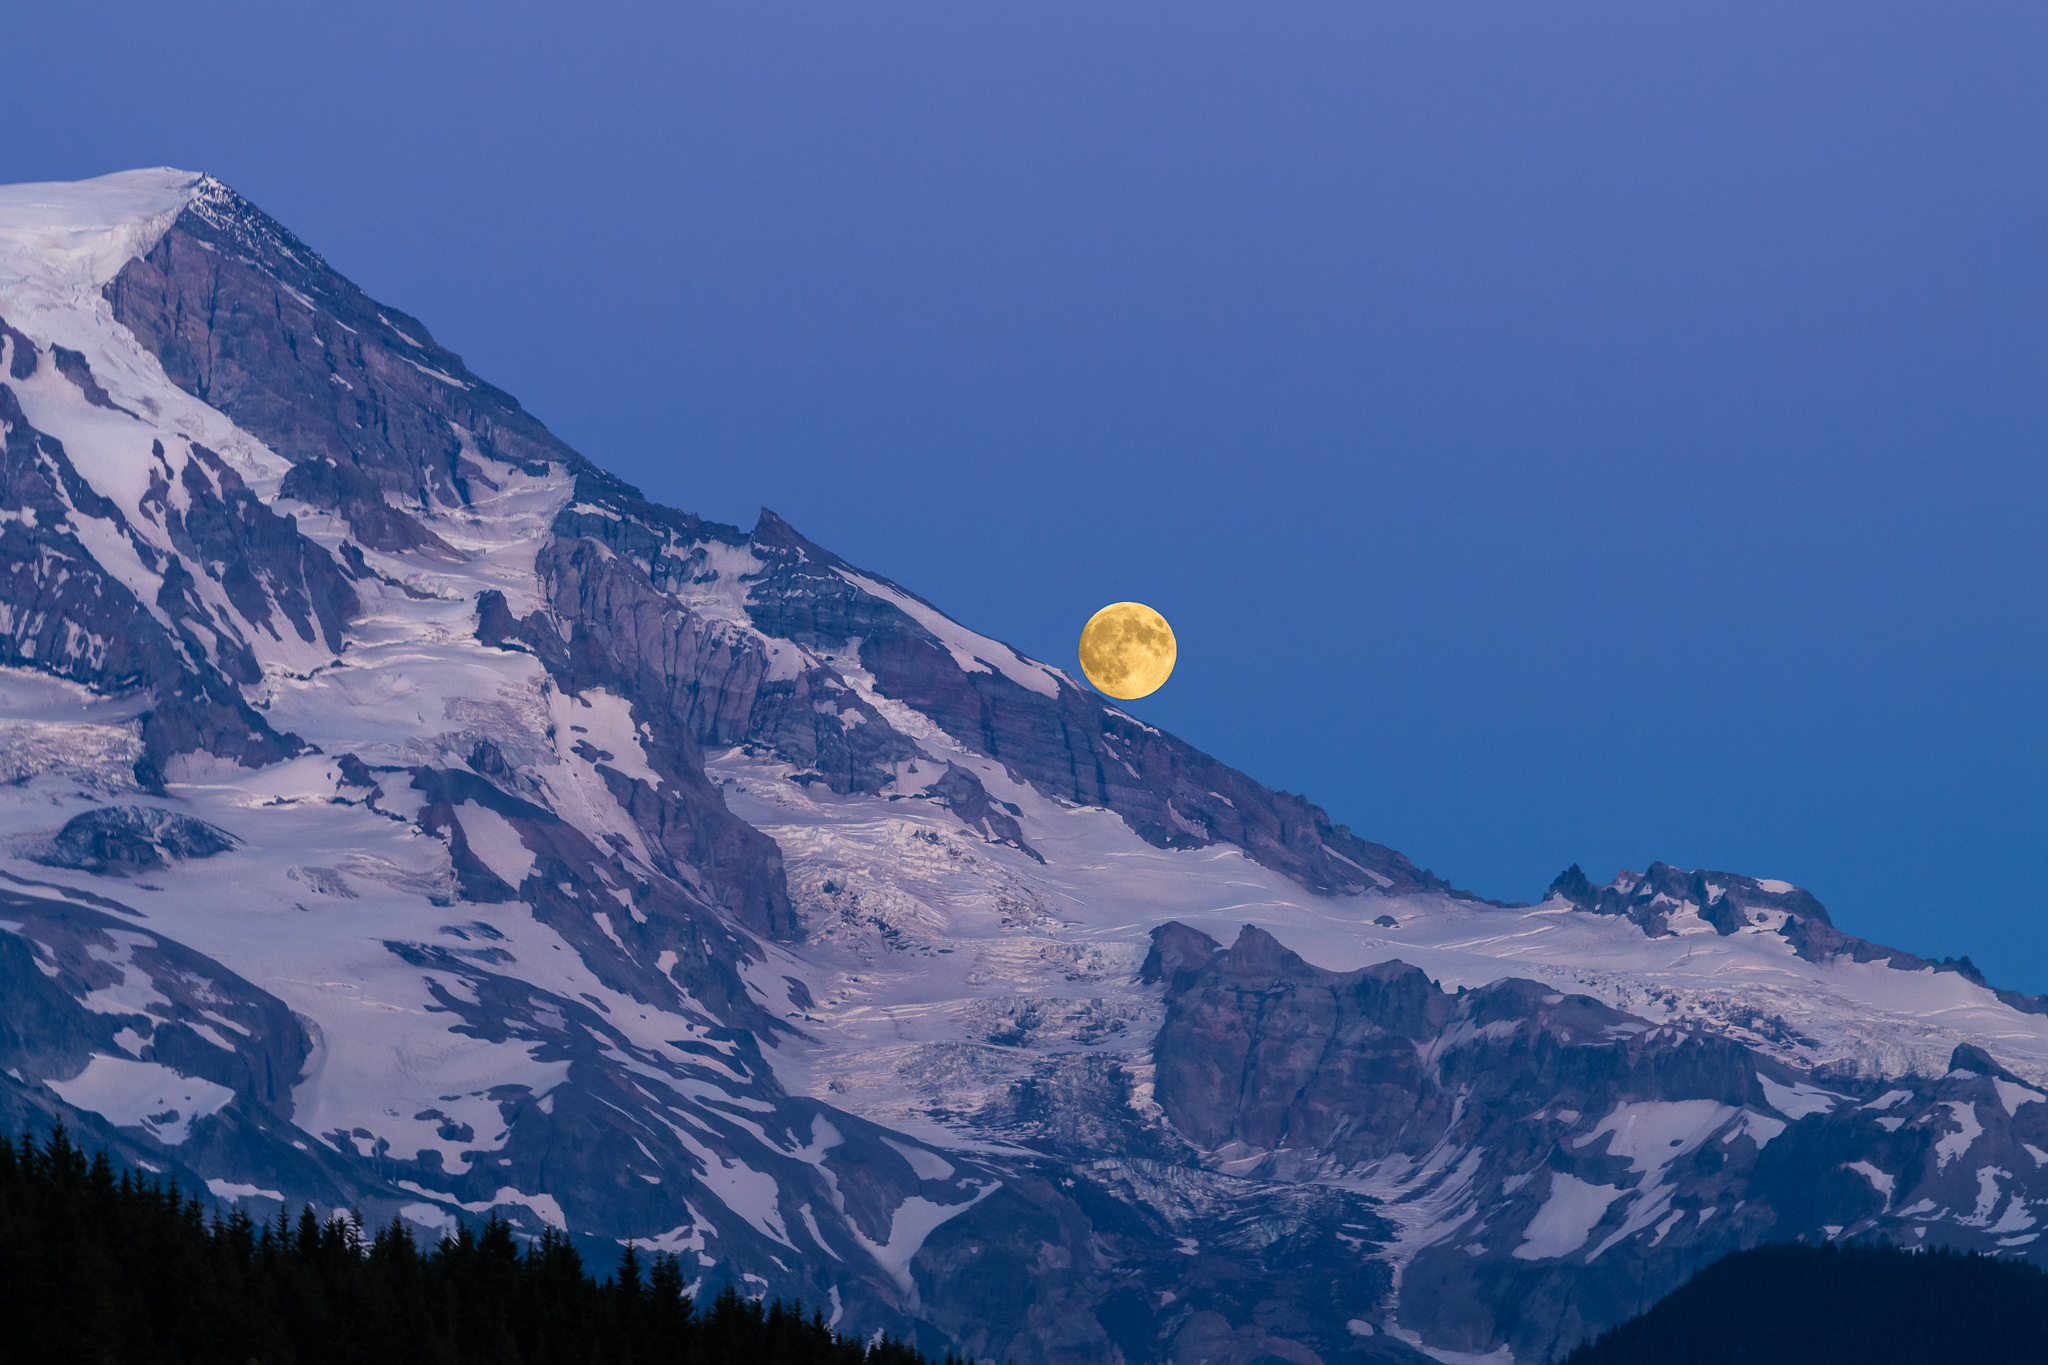 Moonrise Moonset And Mars Photos Hit The High Points At Mount